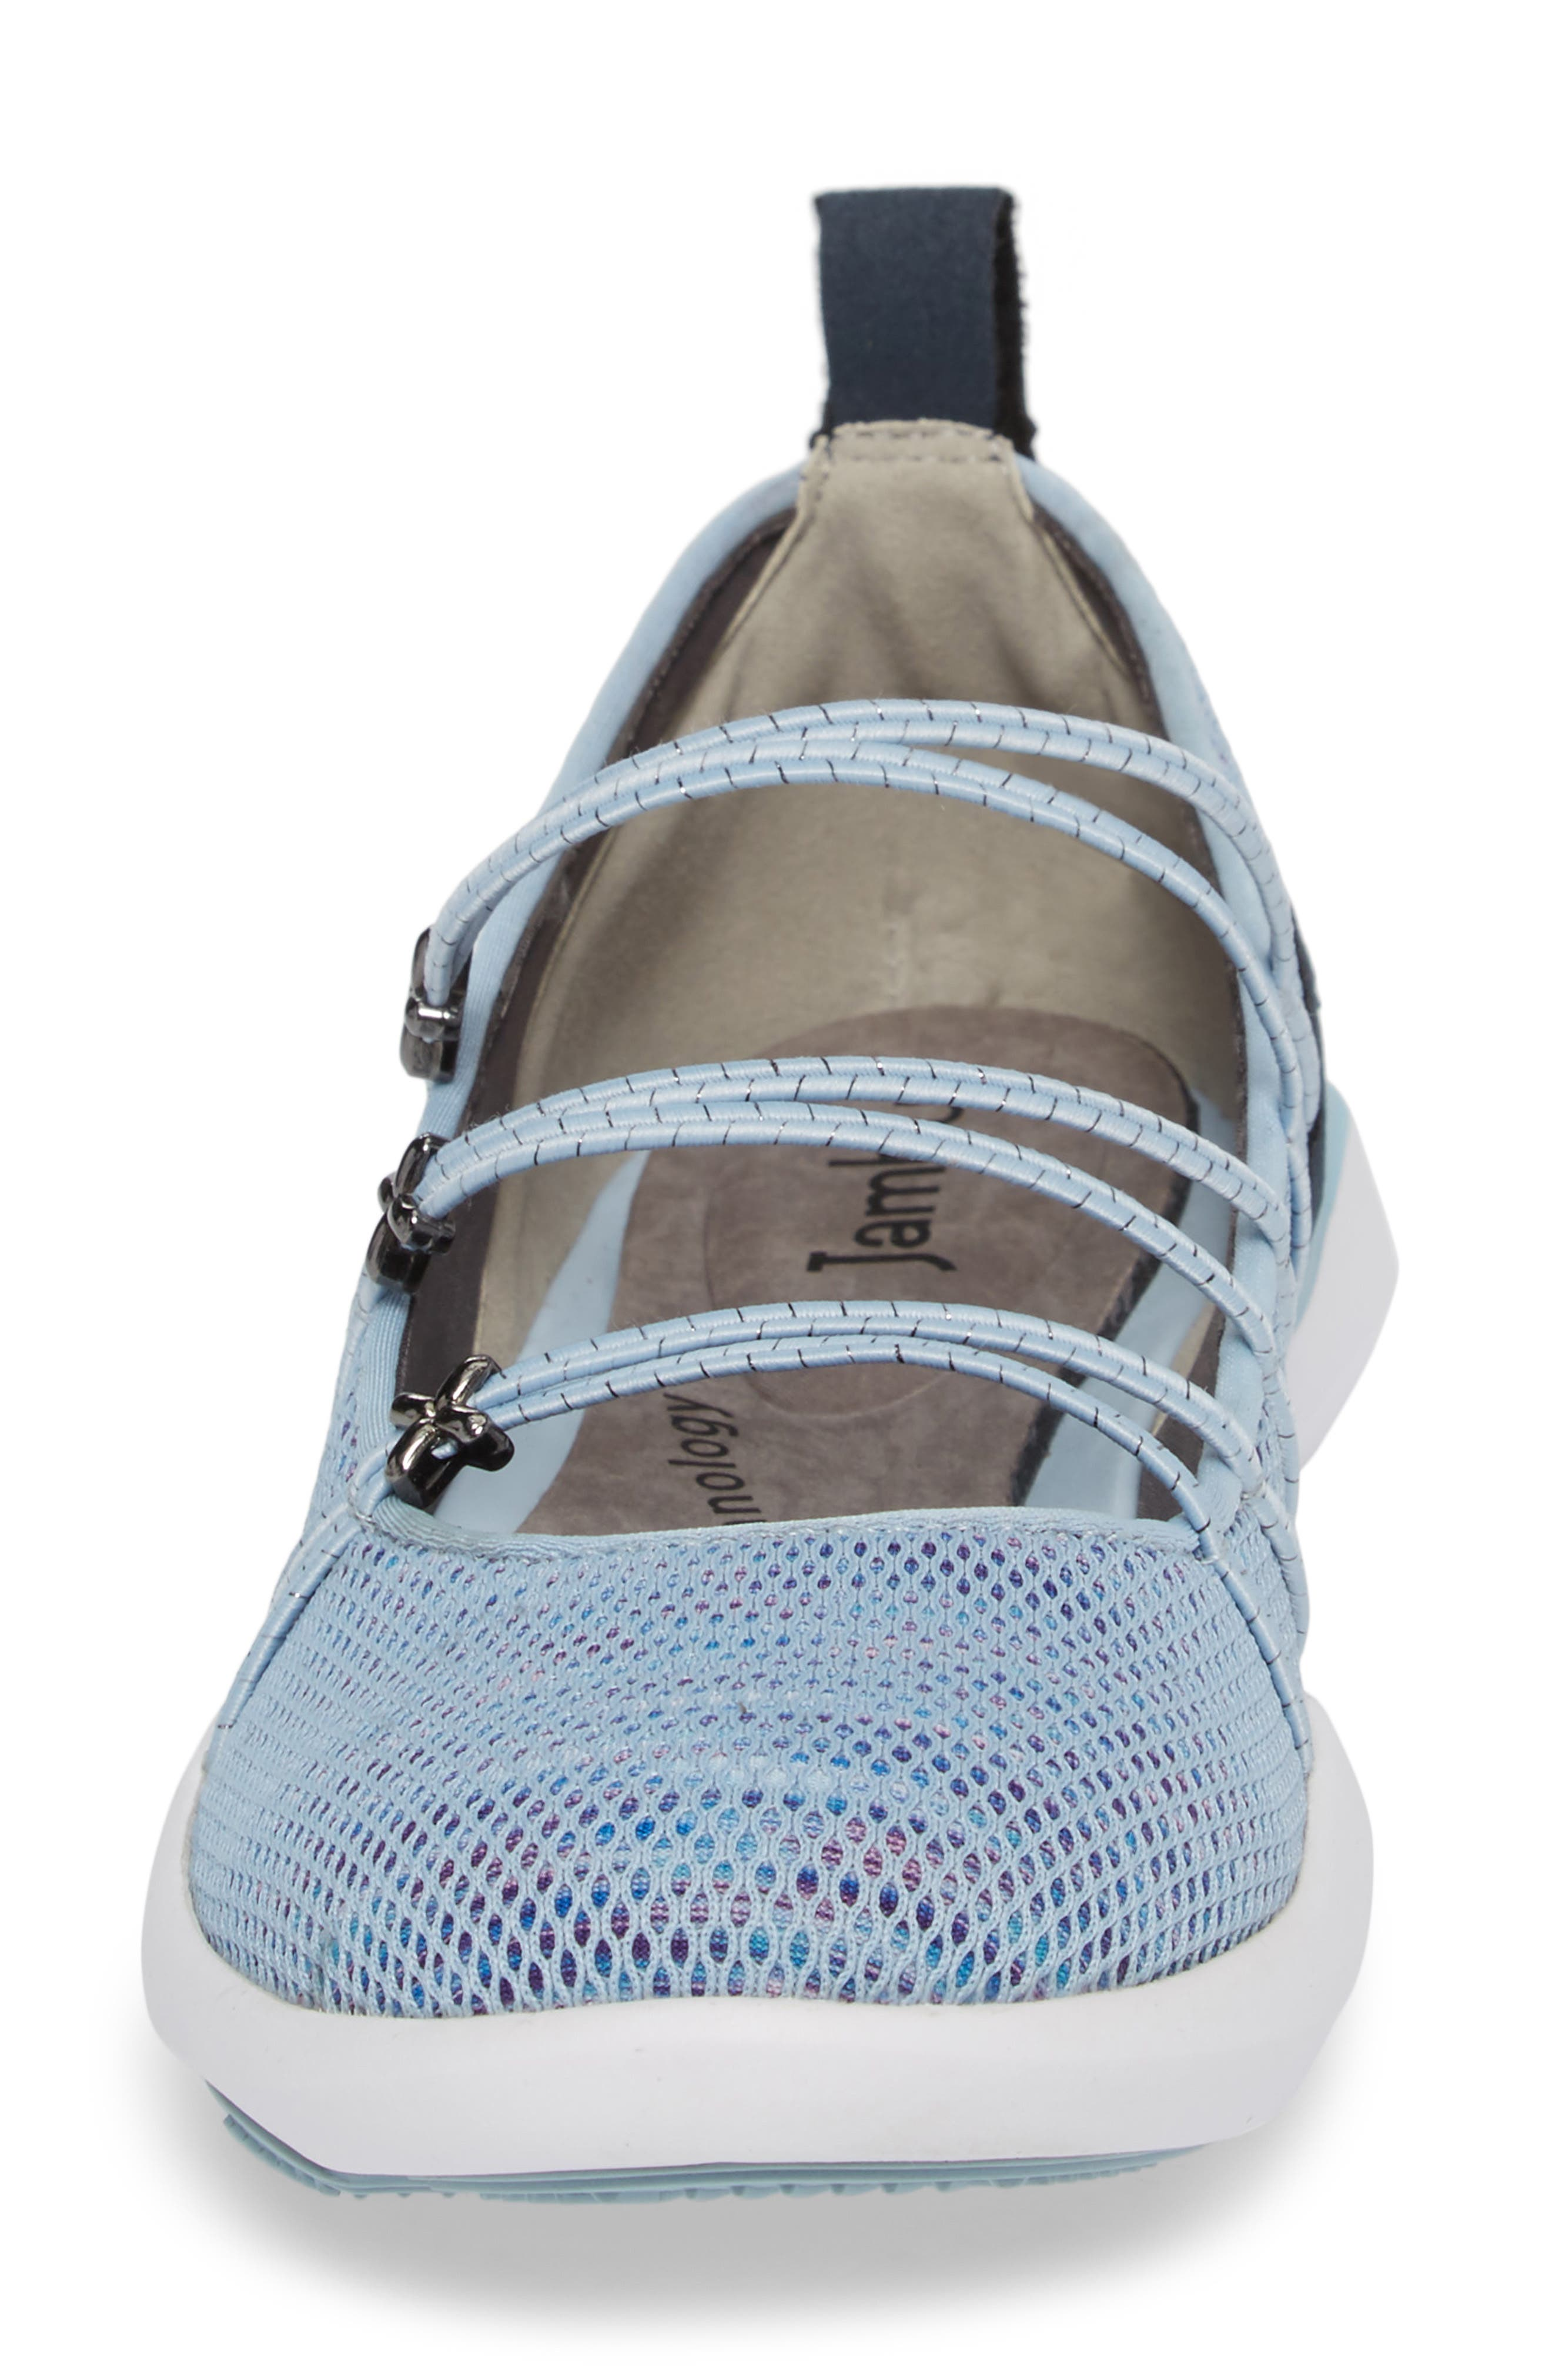 Cheyenne Water Ready Slip-on,                             Alternate thumbnail 4, color,                             Powder Blue